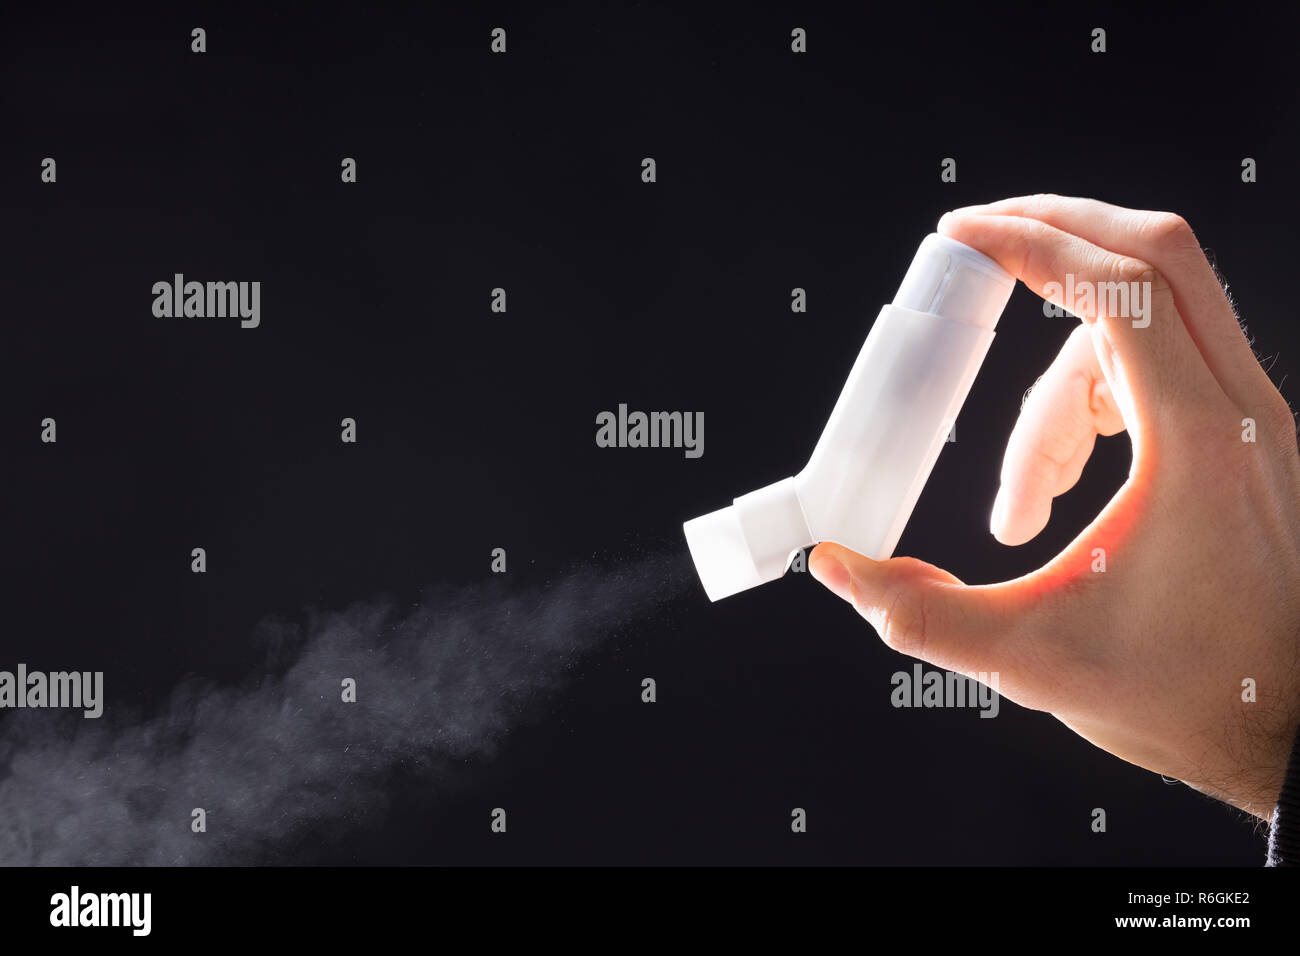 Person Using Asthma Inhaler - Stock Image